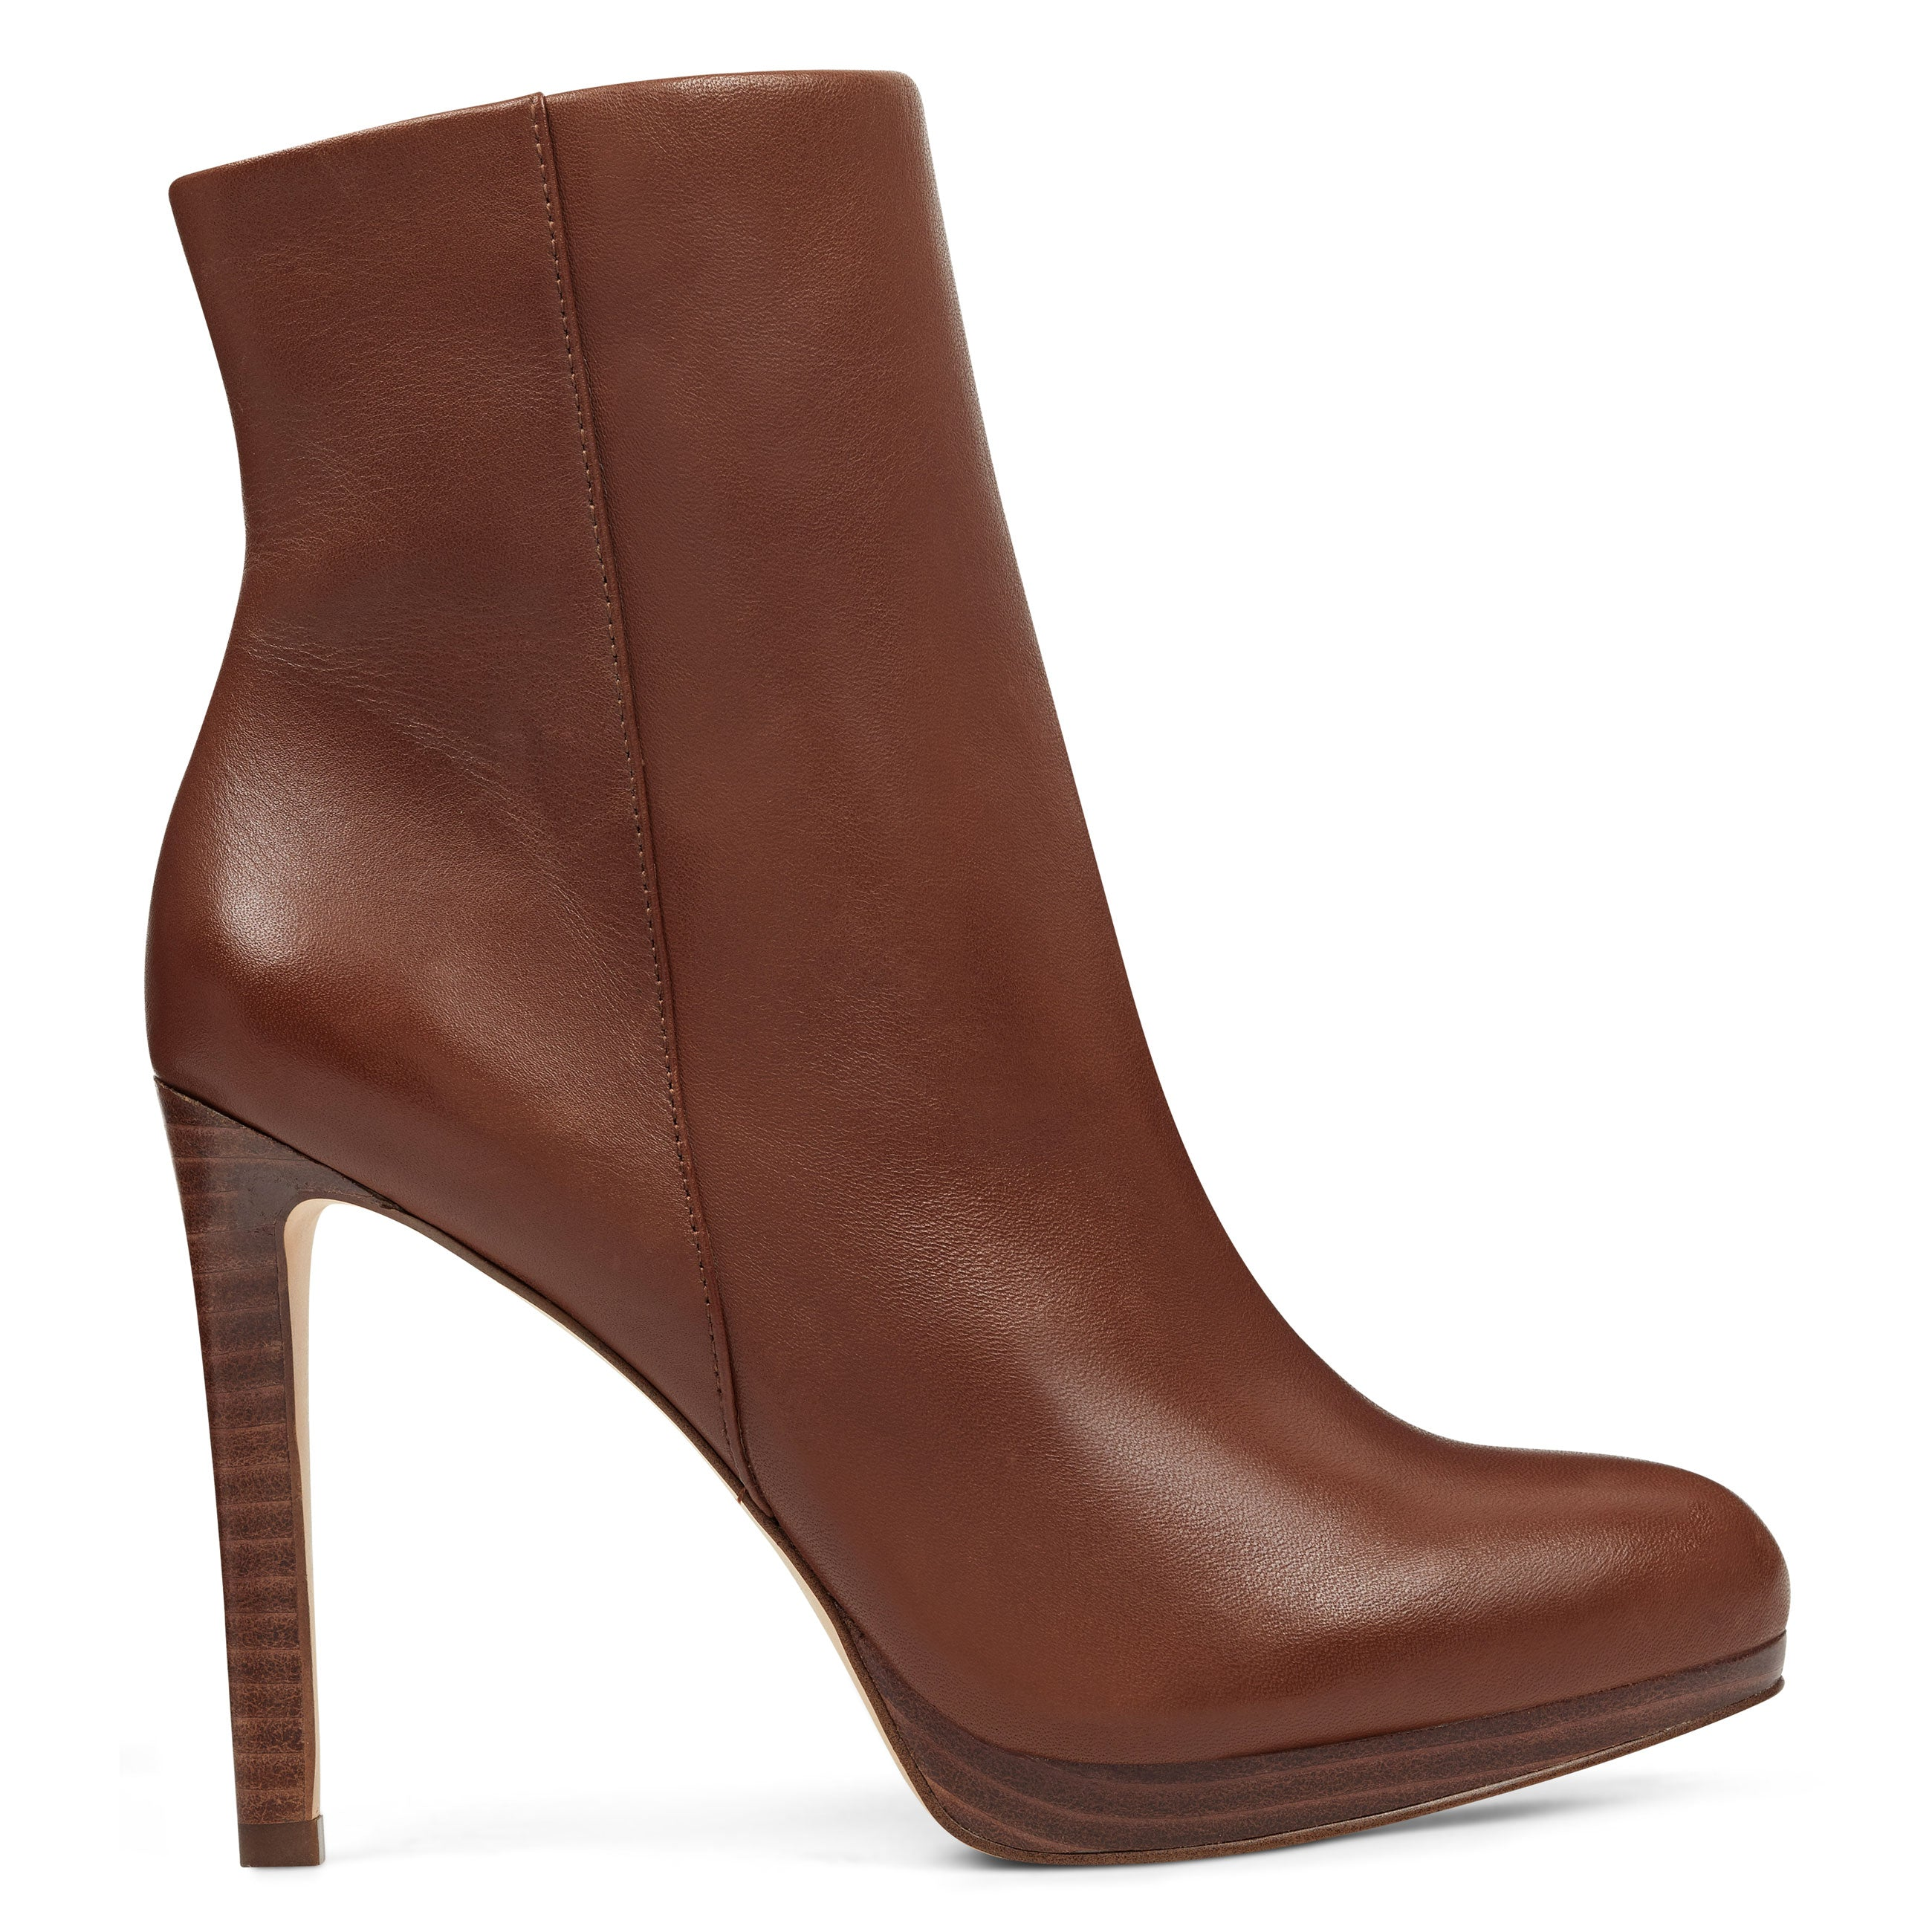 NINEWEST Quanette Platform Booties